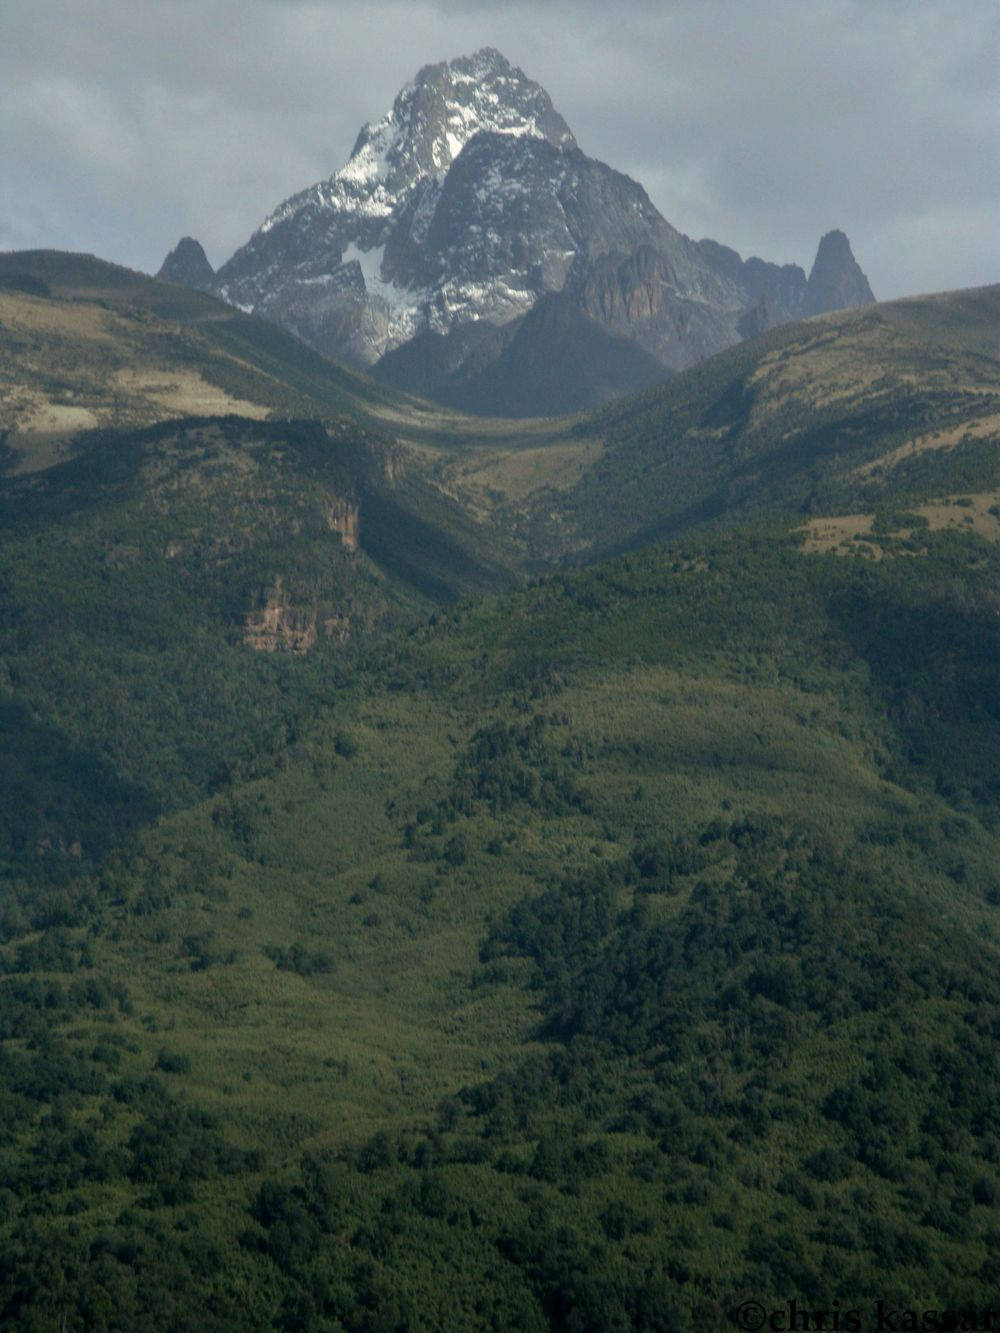 mt_kenya_from_above.jpg